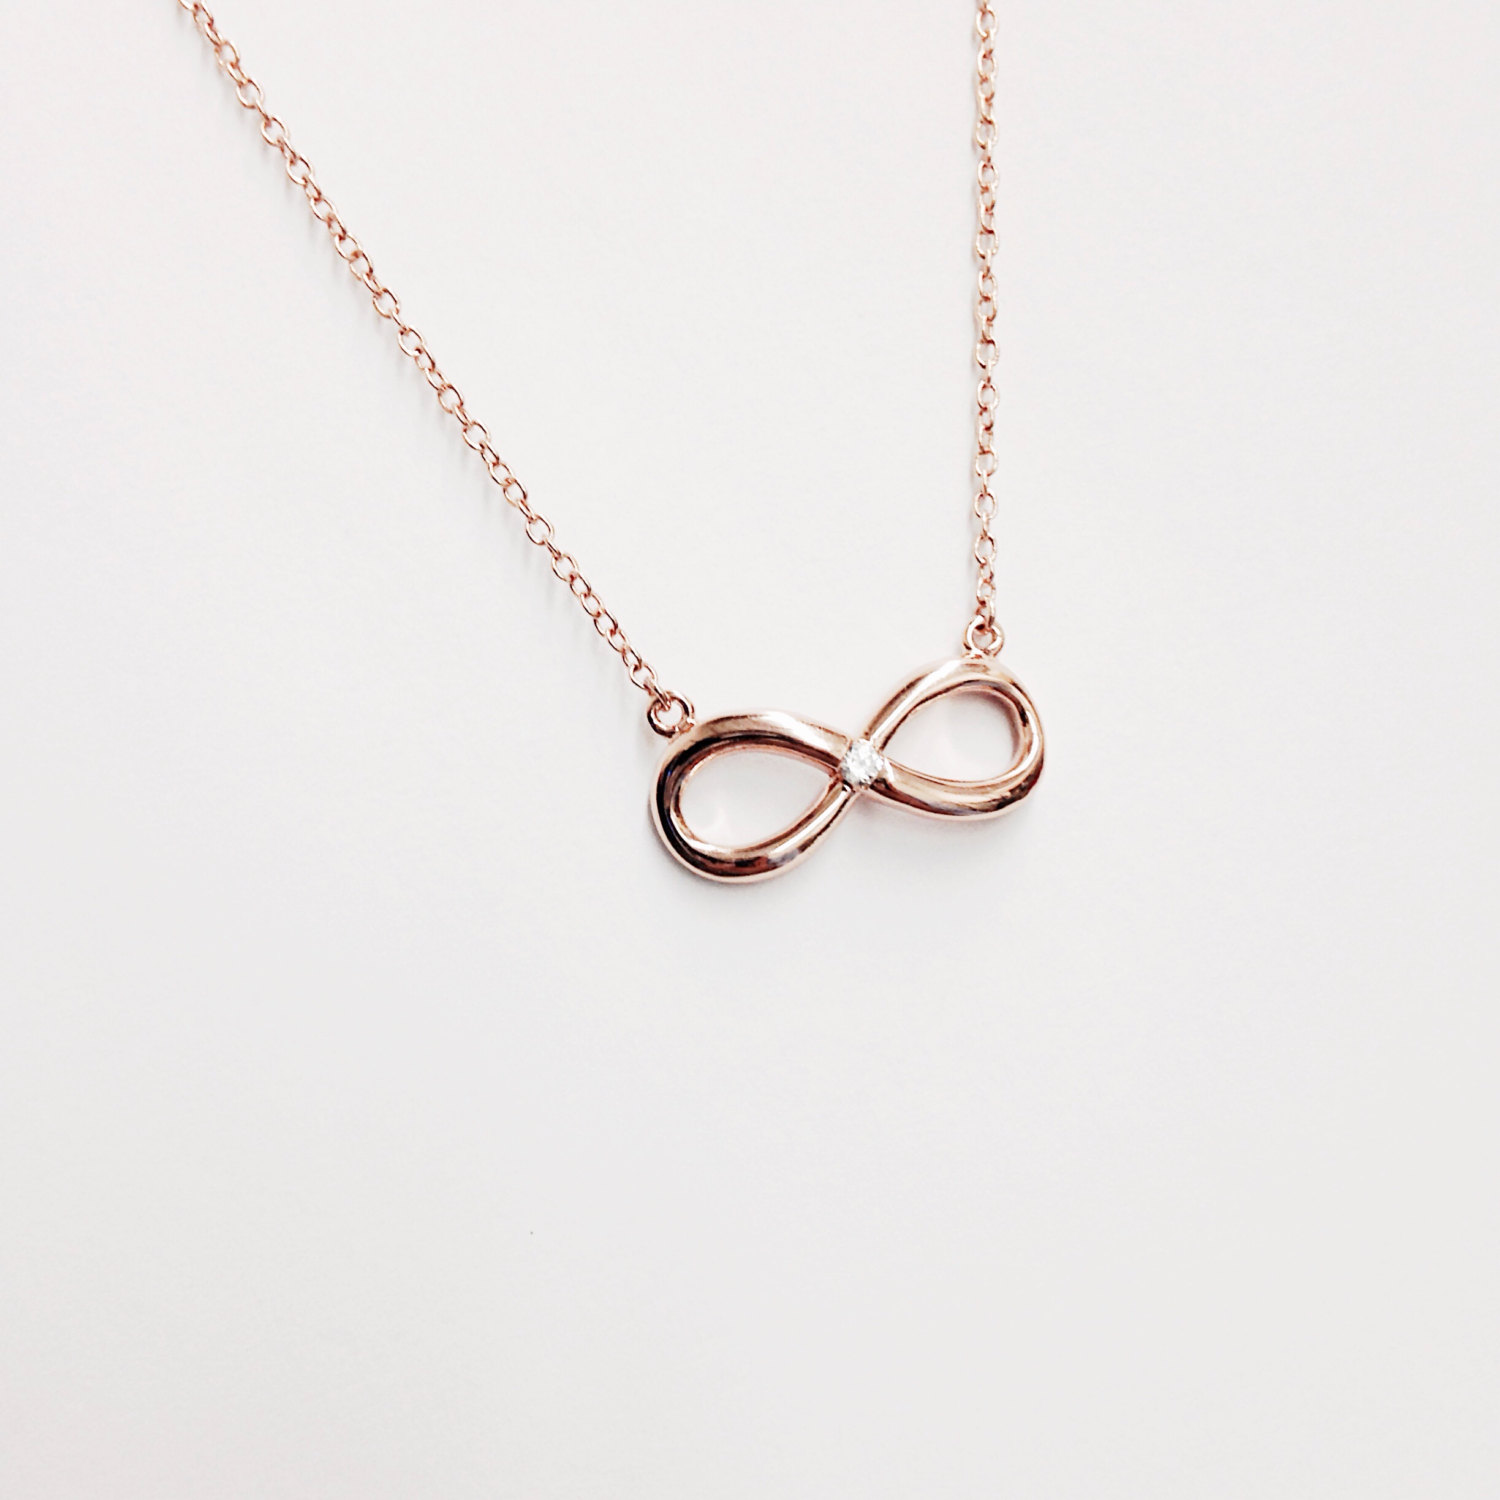 Rose gold infinity necklace, rose gold necklace, delicate necklace, minimalist necklace, infinity necklace, valentines gift